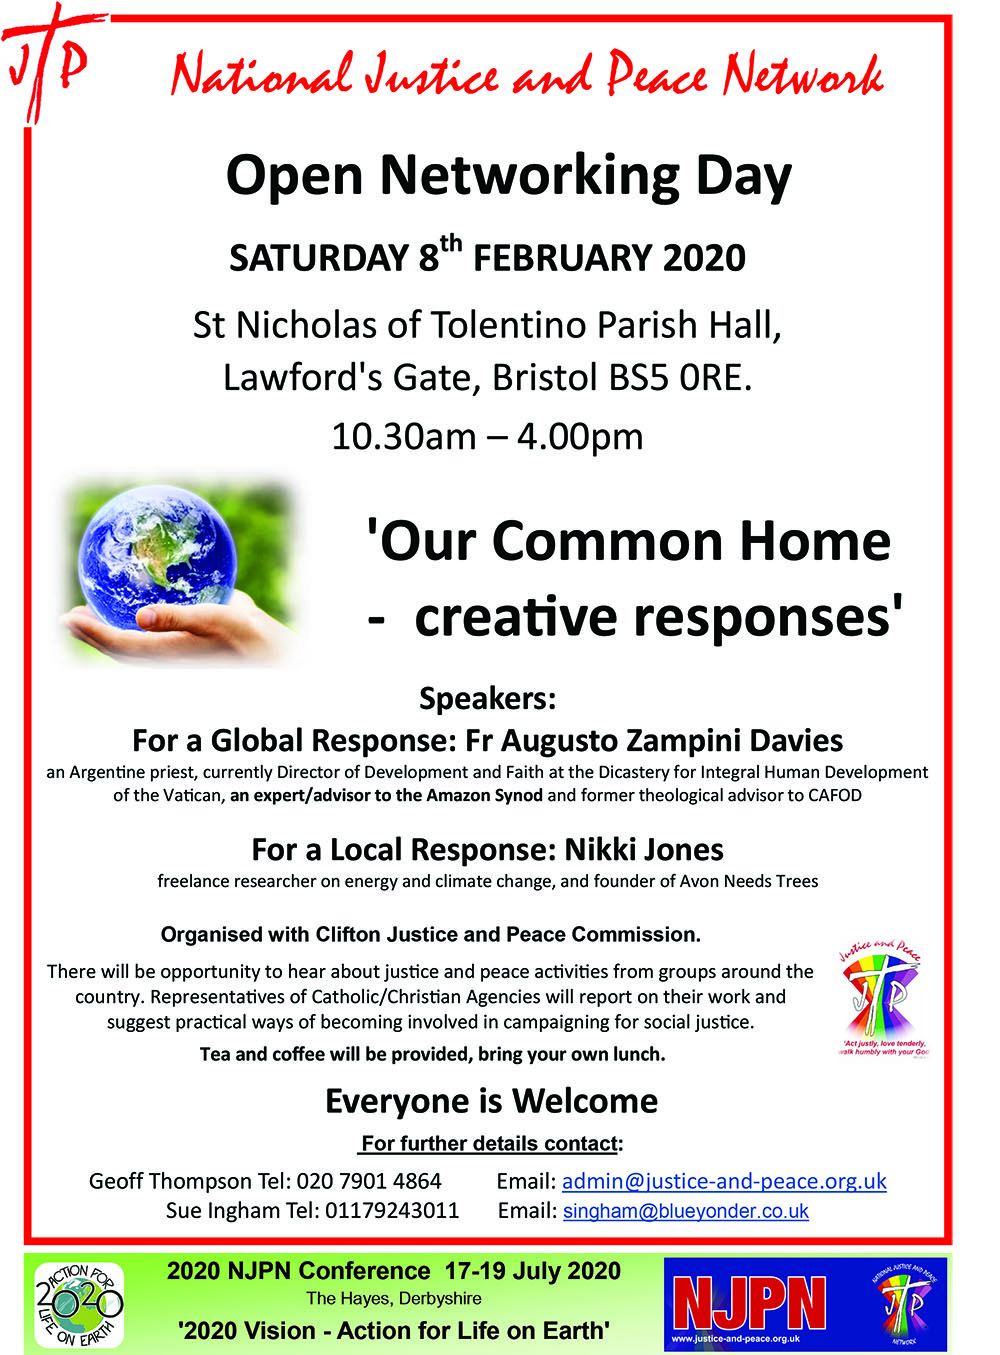 National Justice and Peace Network Open Networking Day @ St Nicholas of Tolentino Parish Hall, Lawford's Gate, Bristol   England   United Kingdom